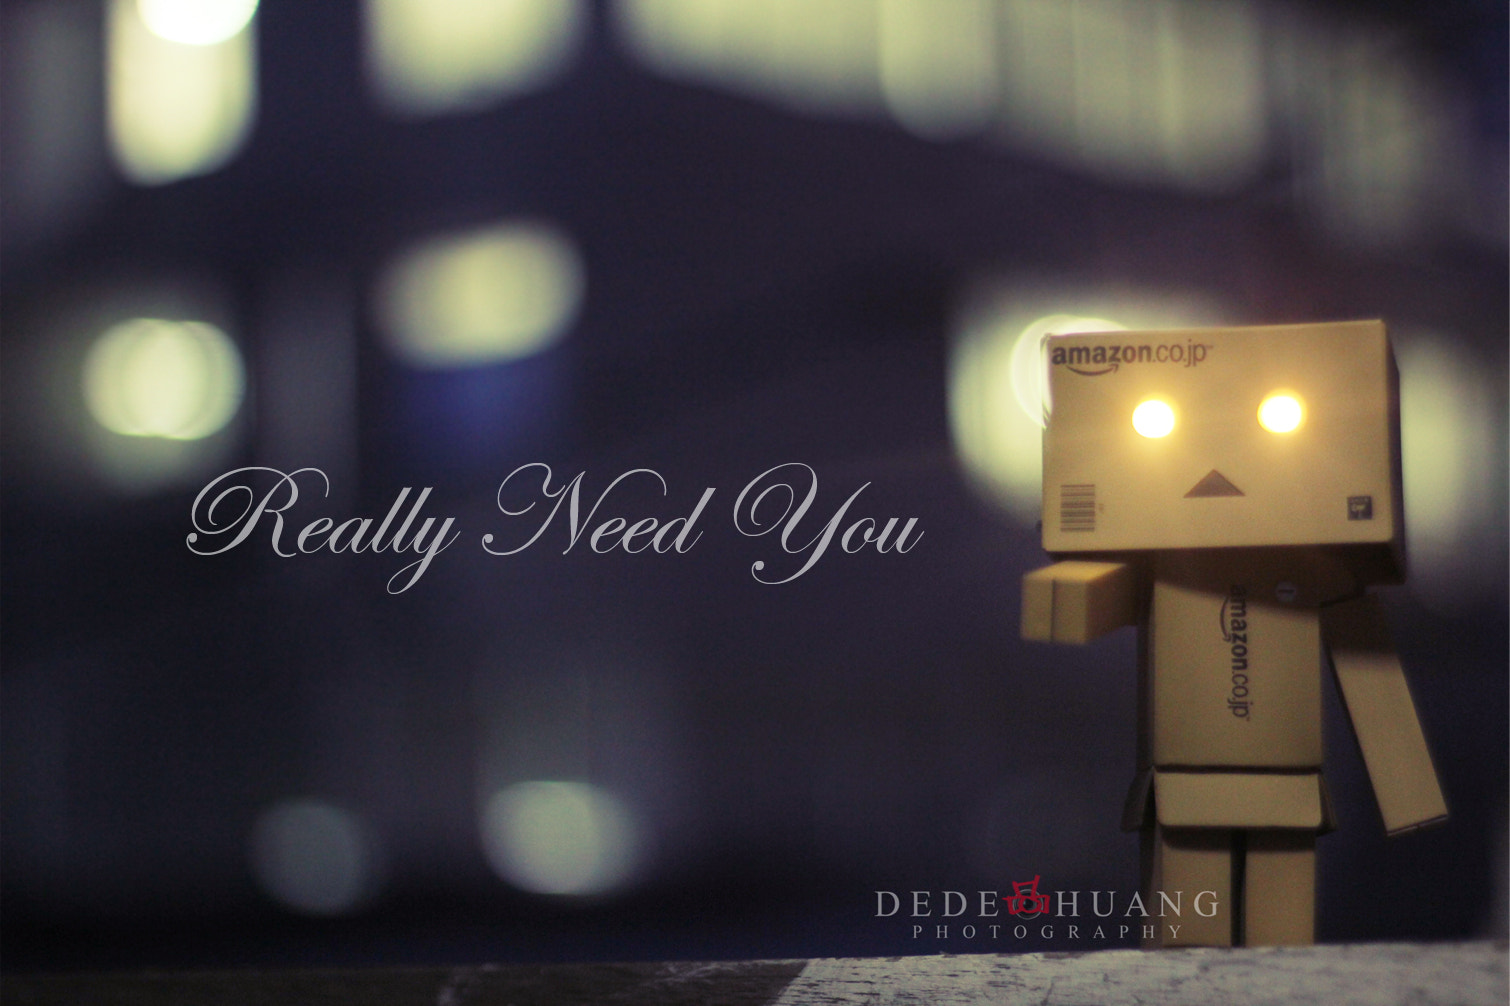 Photograph really need you by Dede Huang on 500px